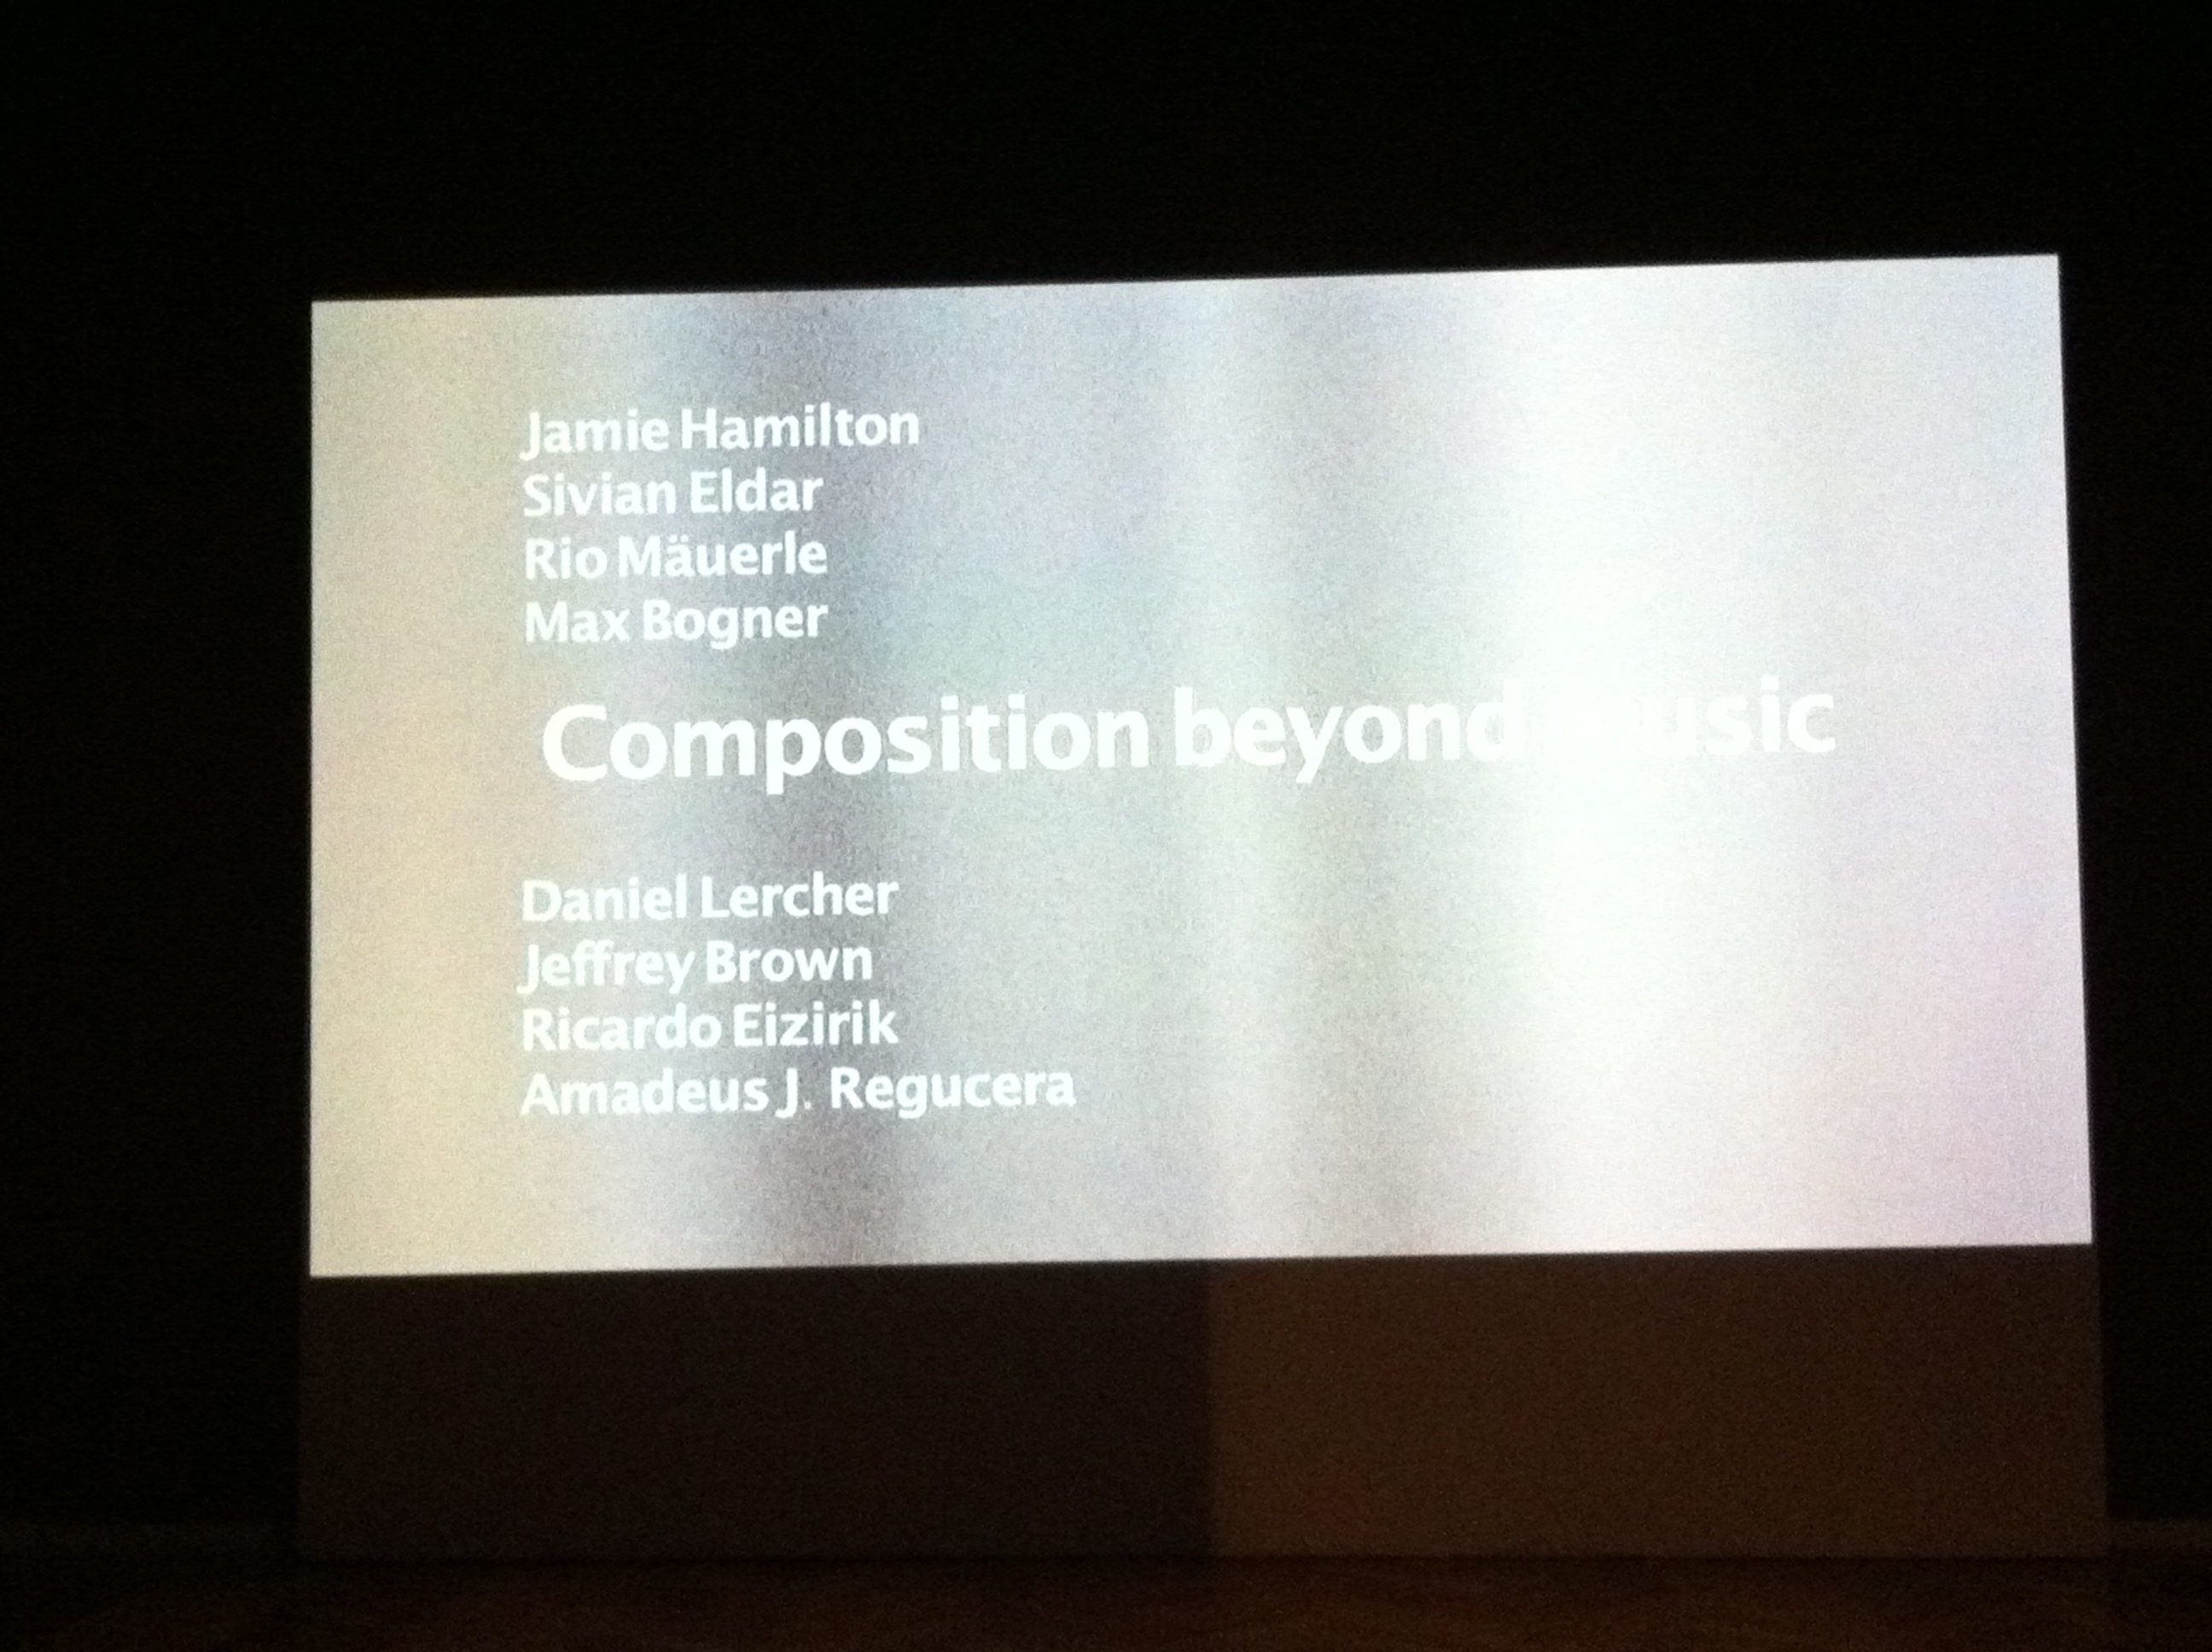 Composition beyond music